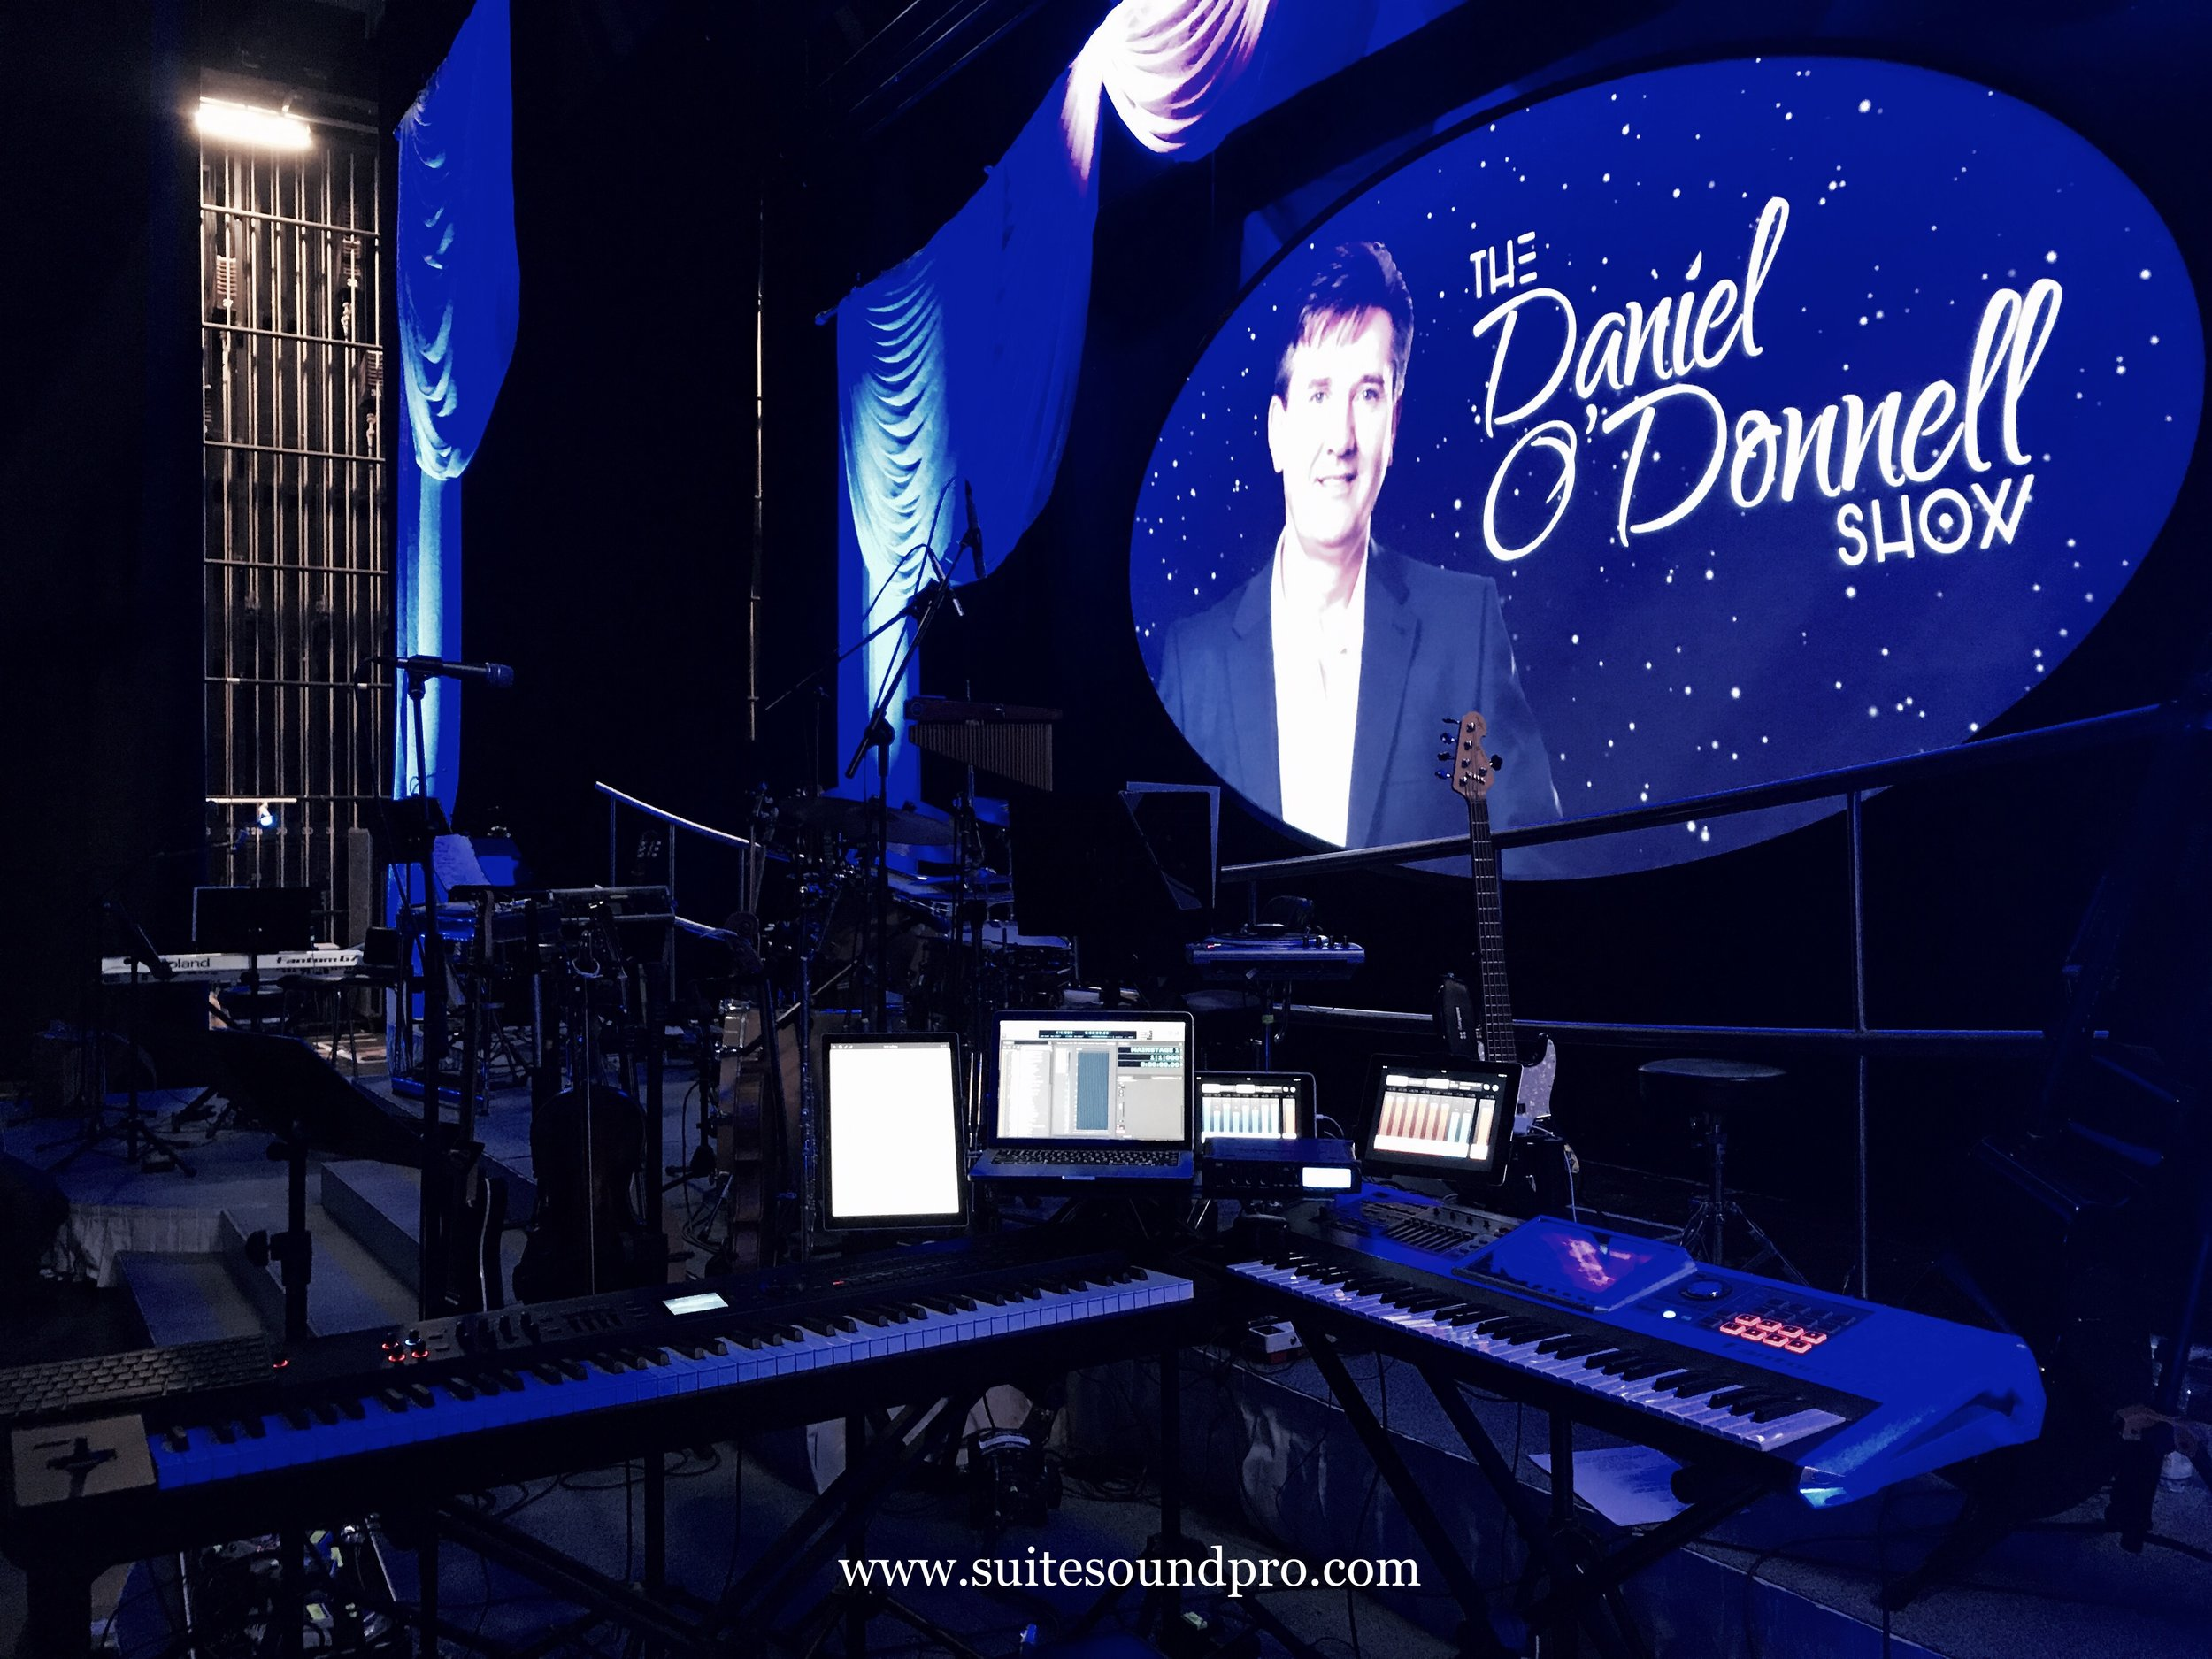 2017 Daniel O'Donnell World Tour Rig